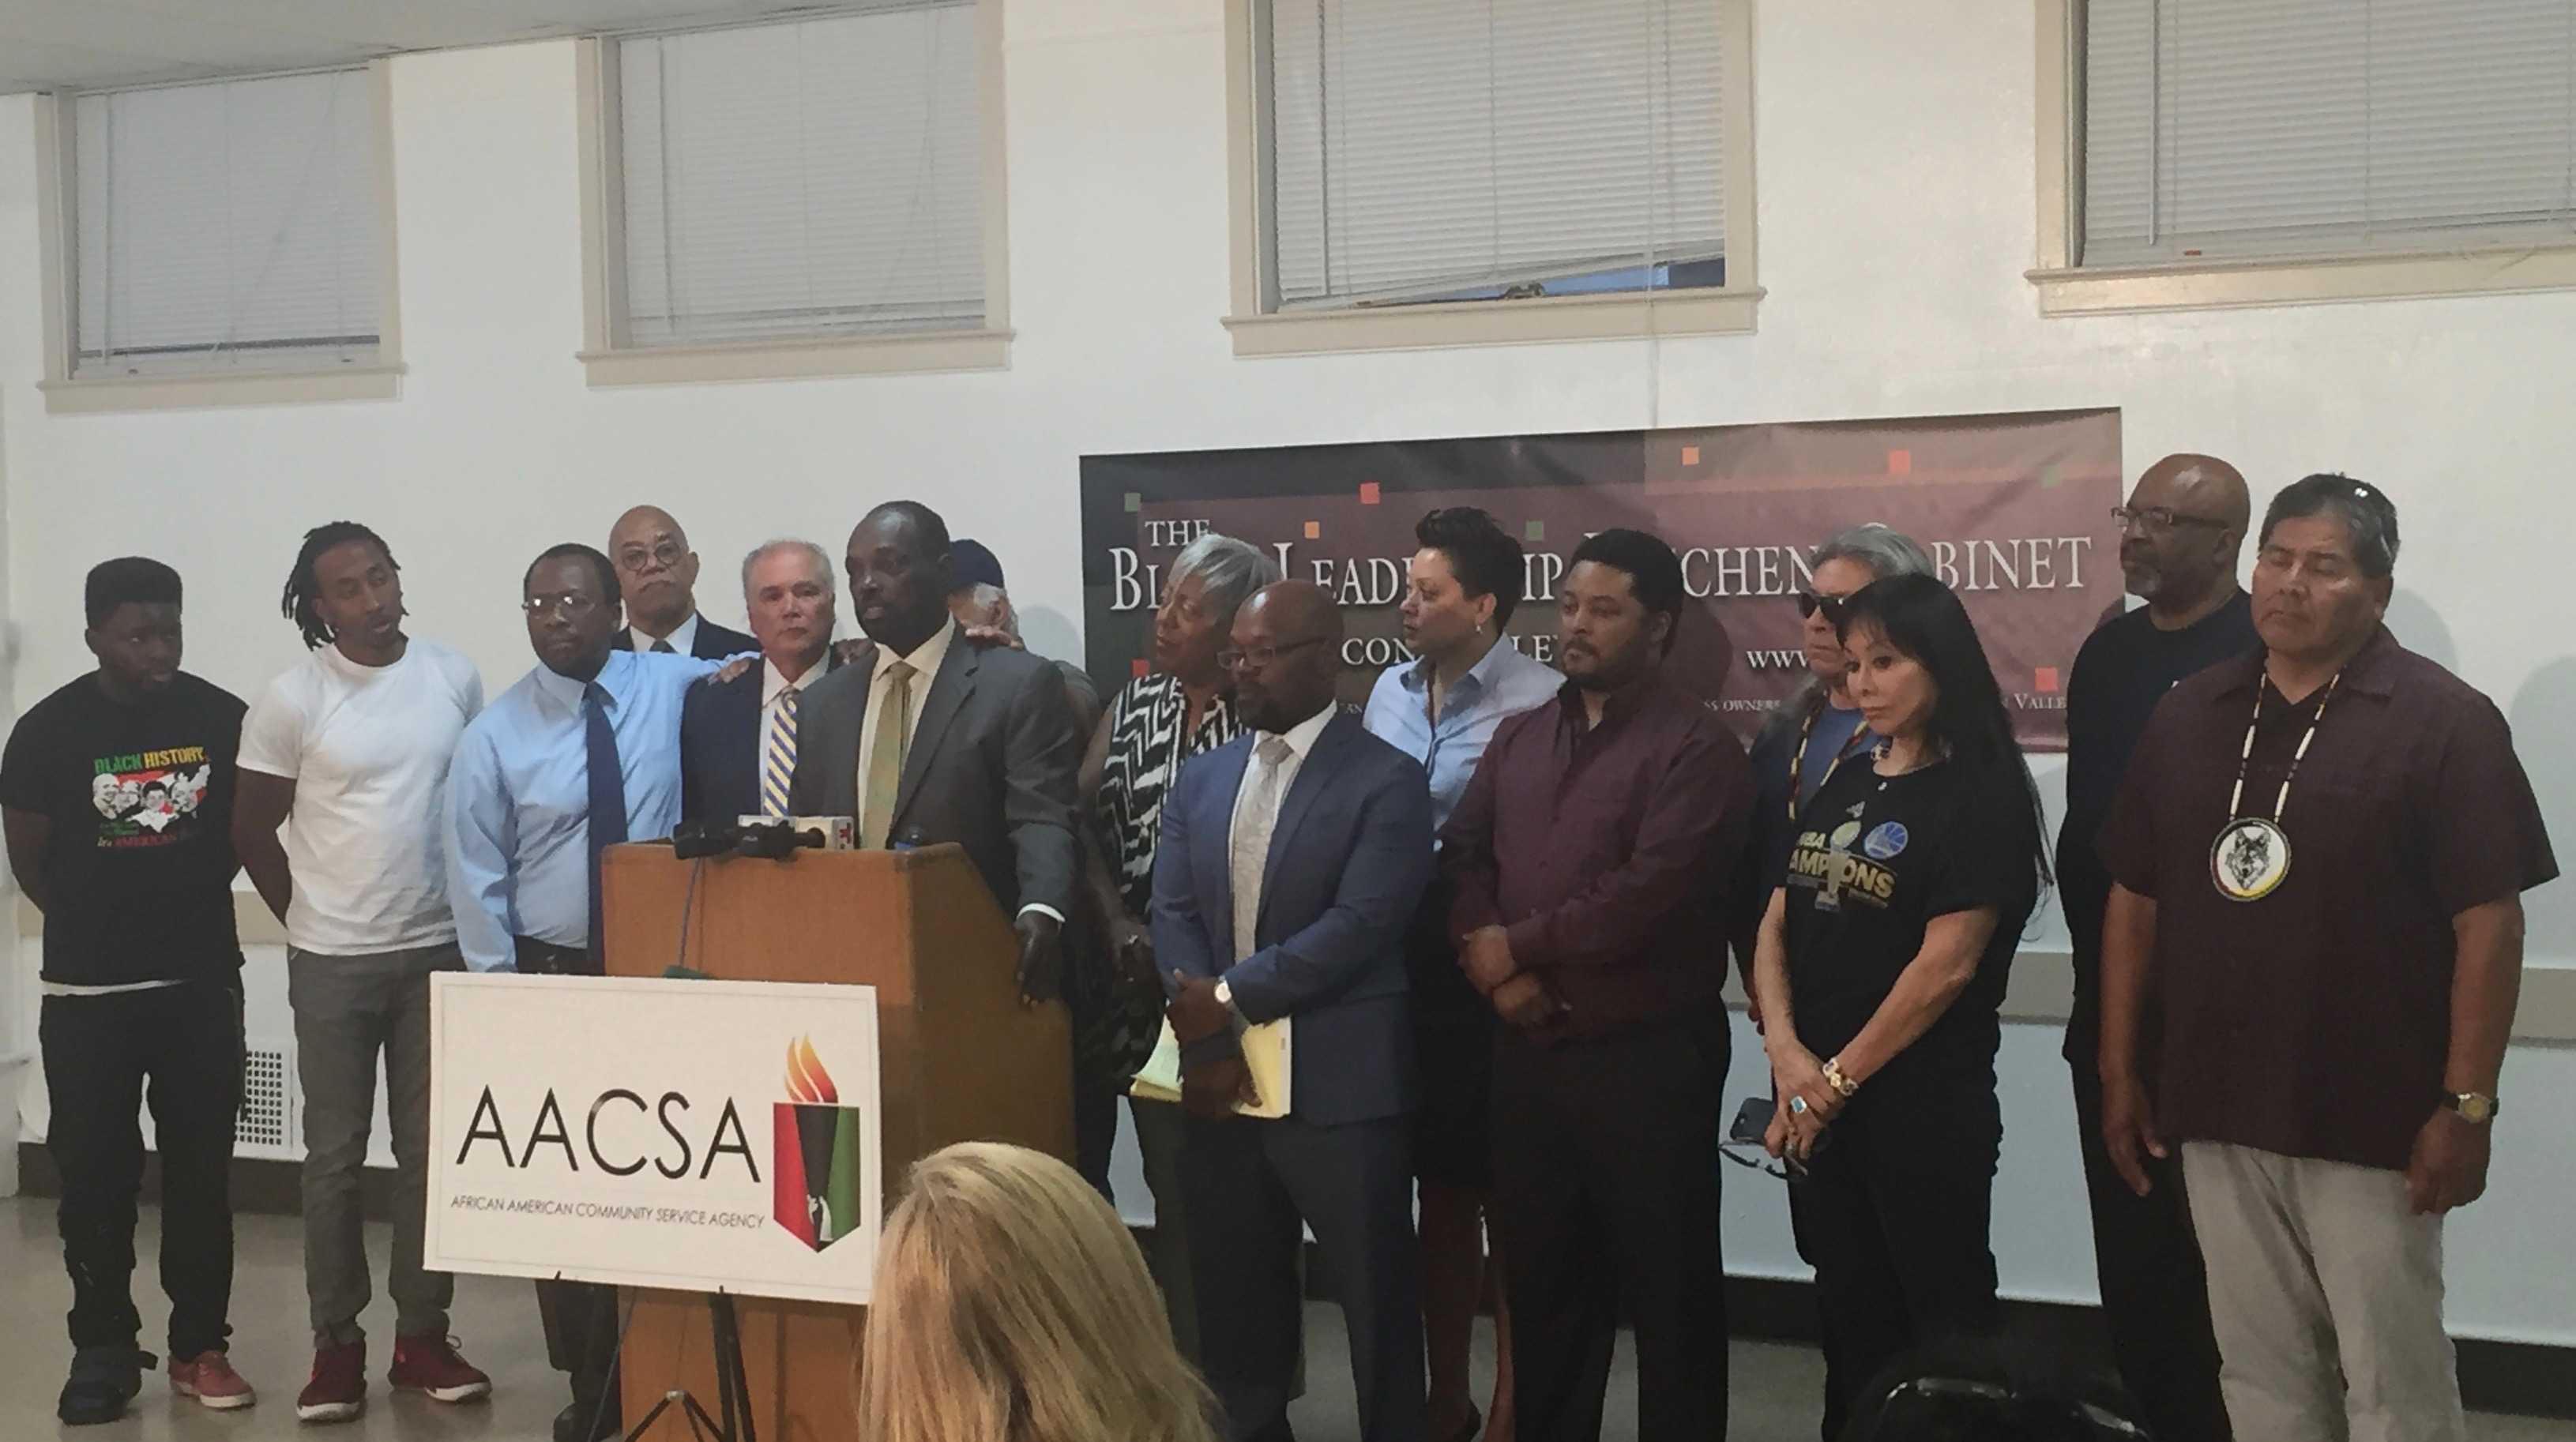 African American leaders hold press conference about racially charged incidents at MVHS